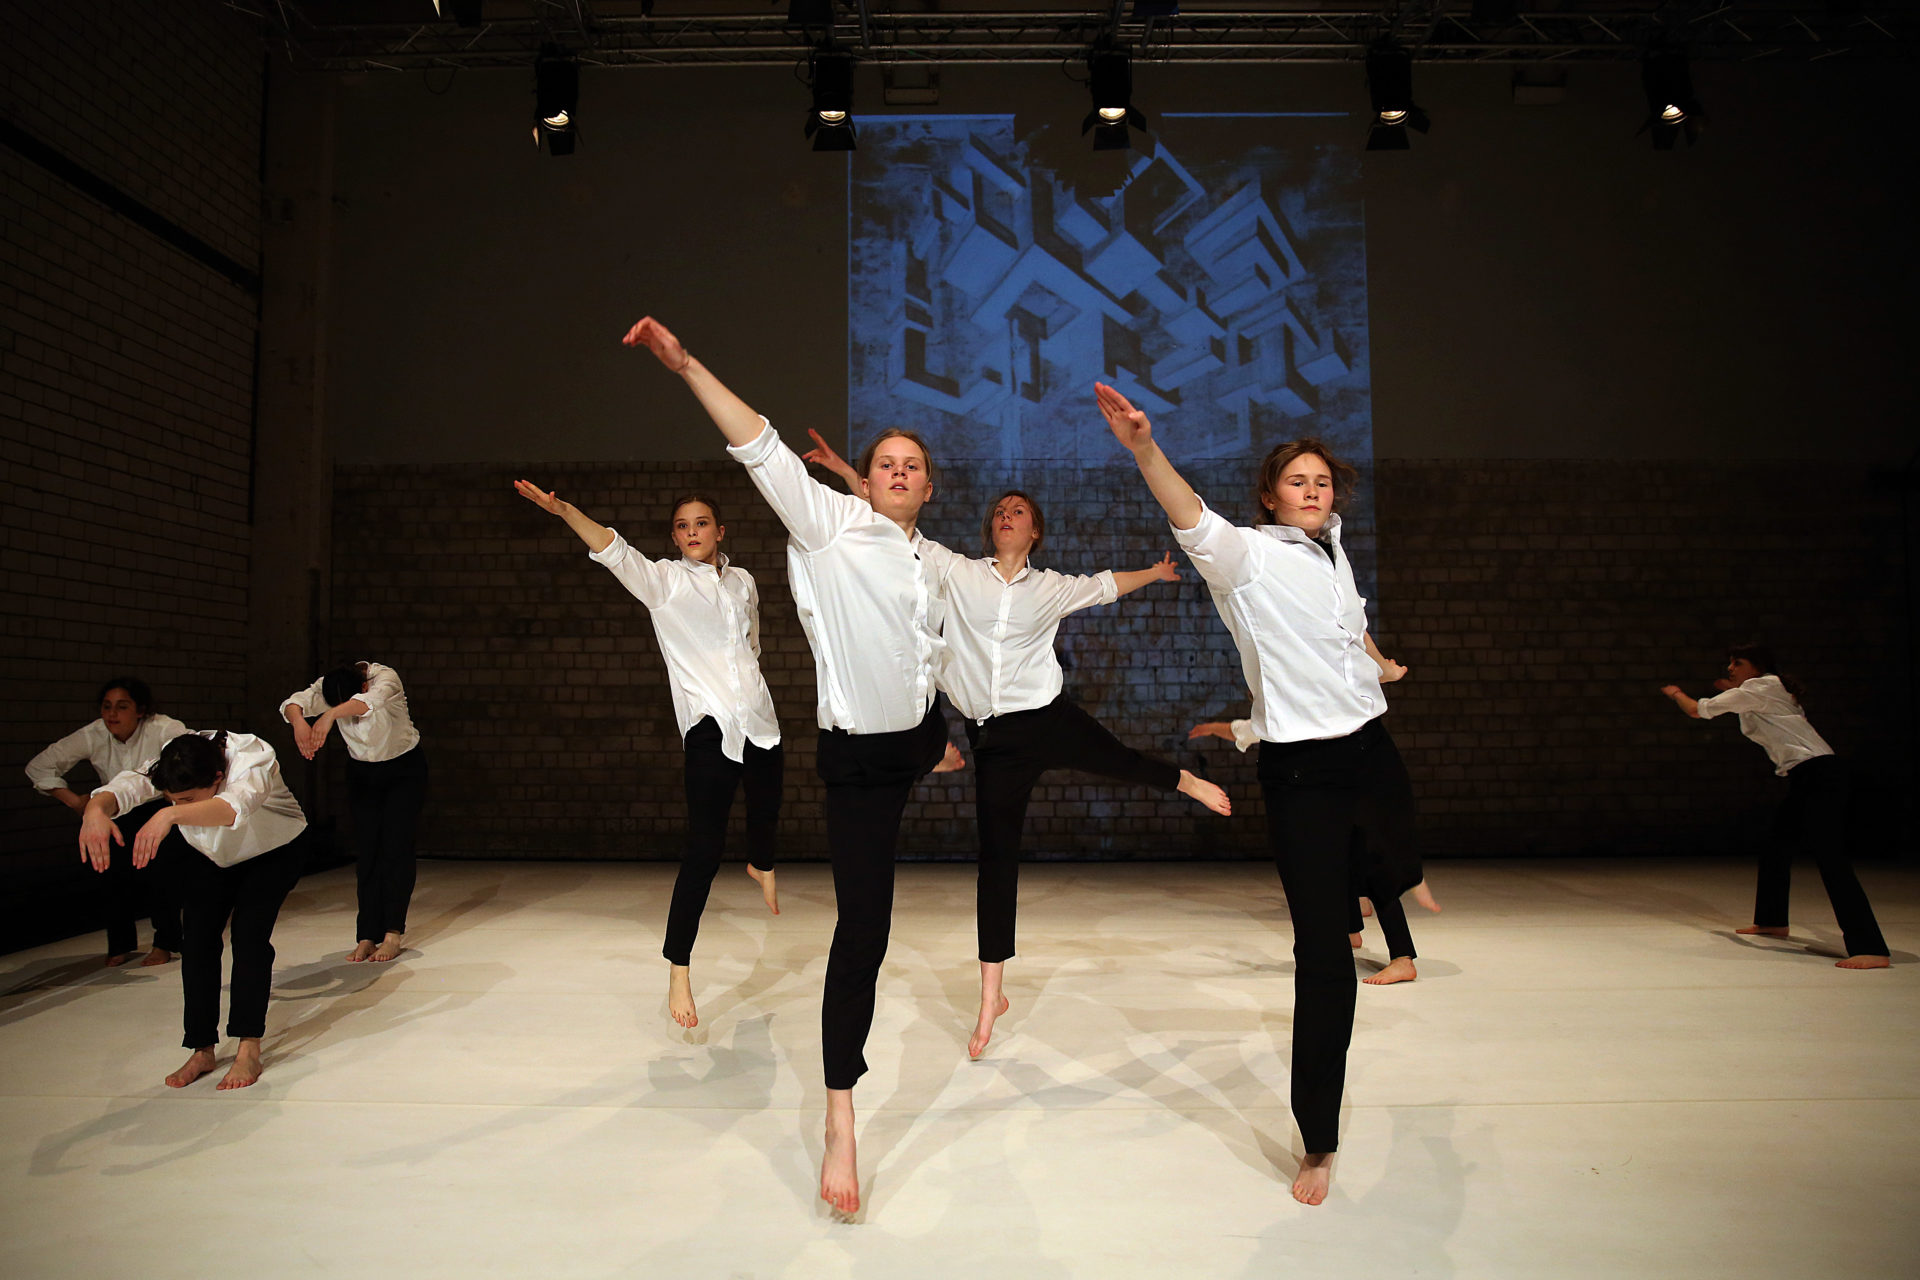 K3 Jugendclub - CONDUCT MY DANCE / Friederike Lampert / Rami Olsen